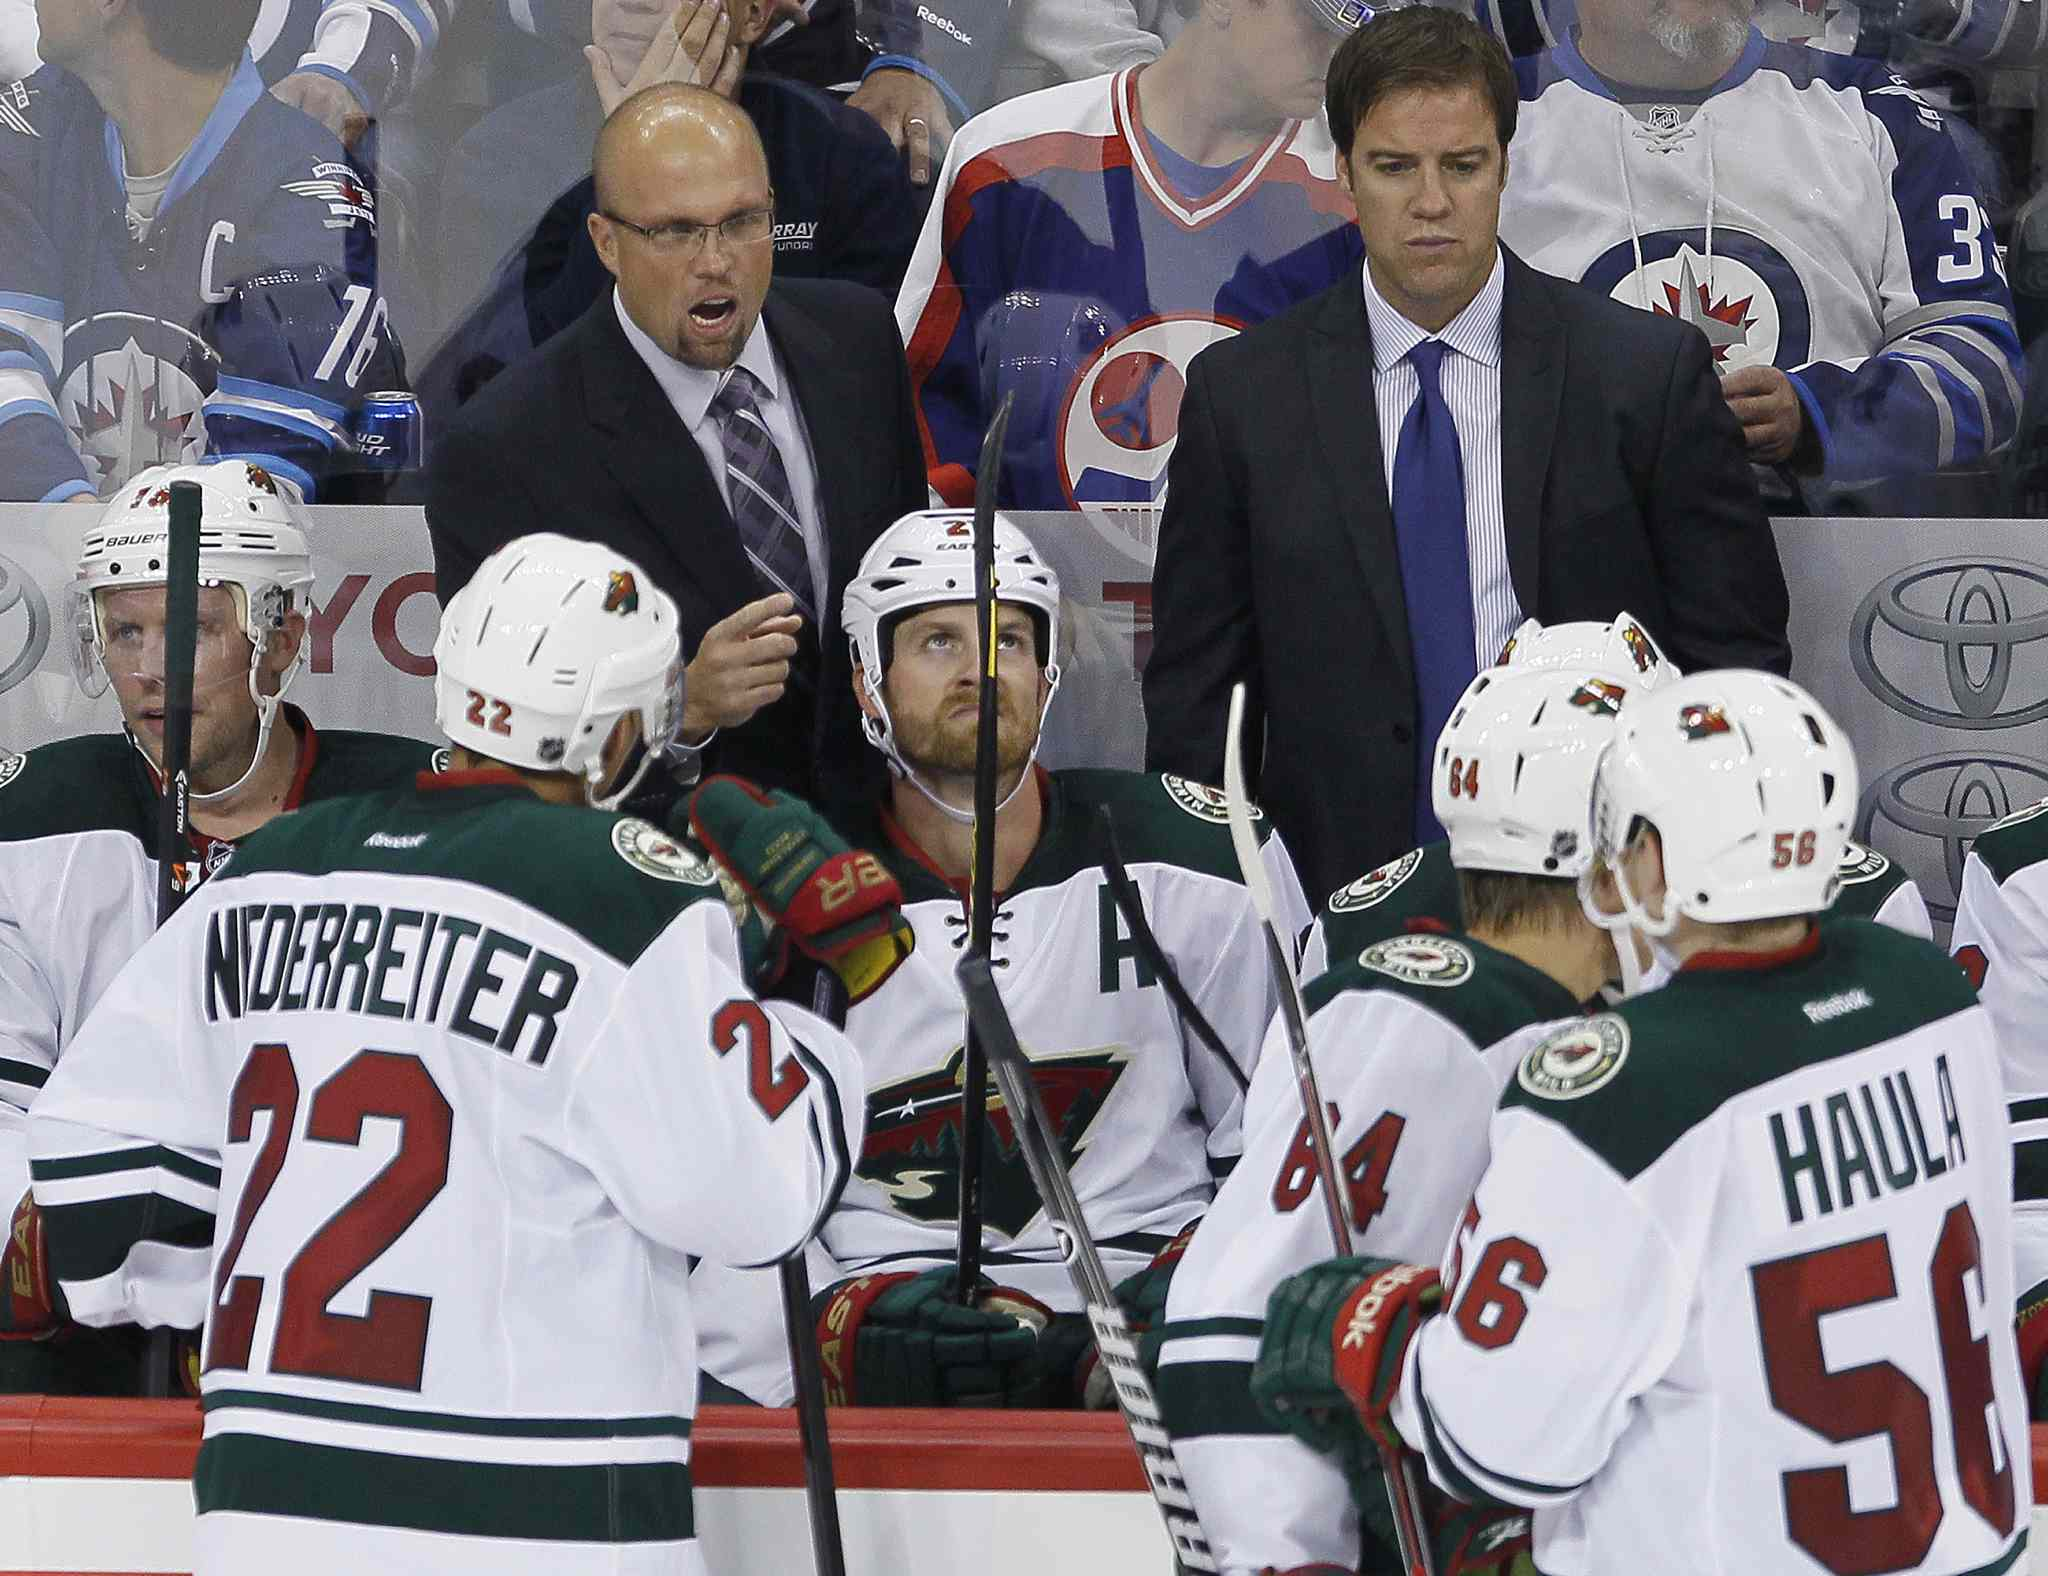 Minnesota Wild head coach Mike Yeo talks to his team during the third period.